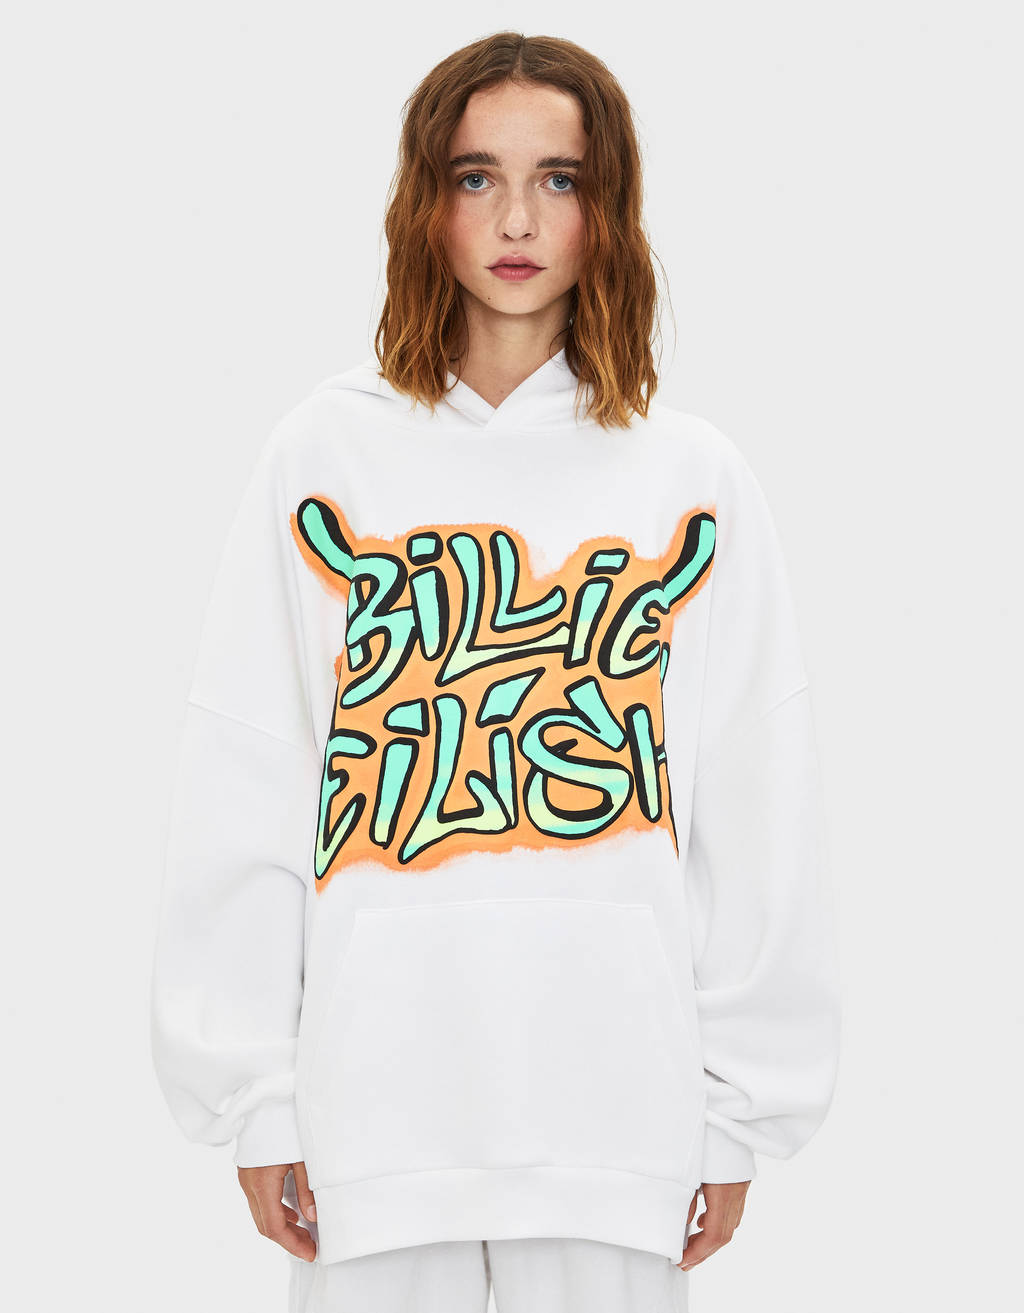 Dessuadora amb graffiti Billie Eilish x Bershka